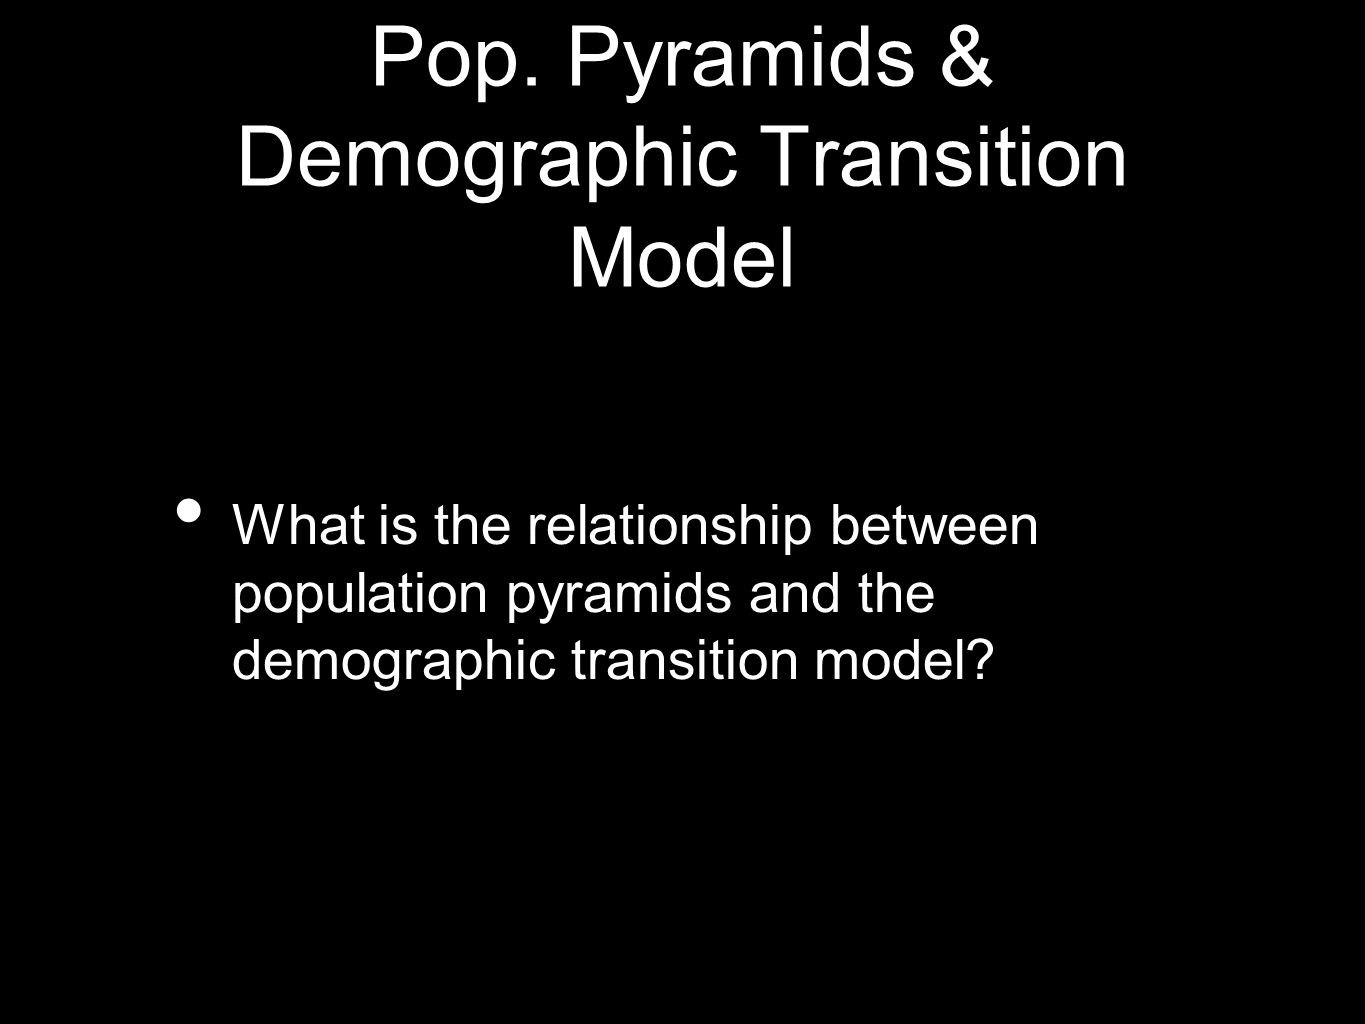 Pop. Pyramids & Demographic Transition Model